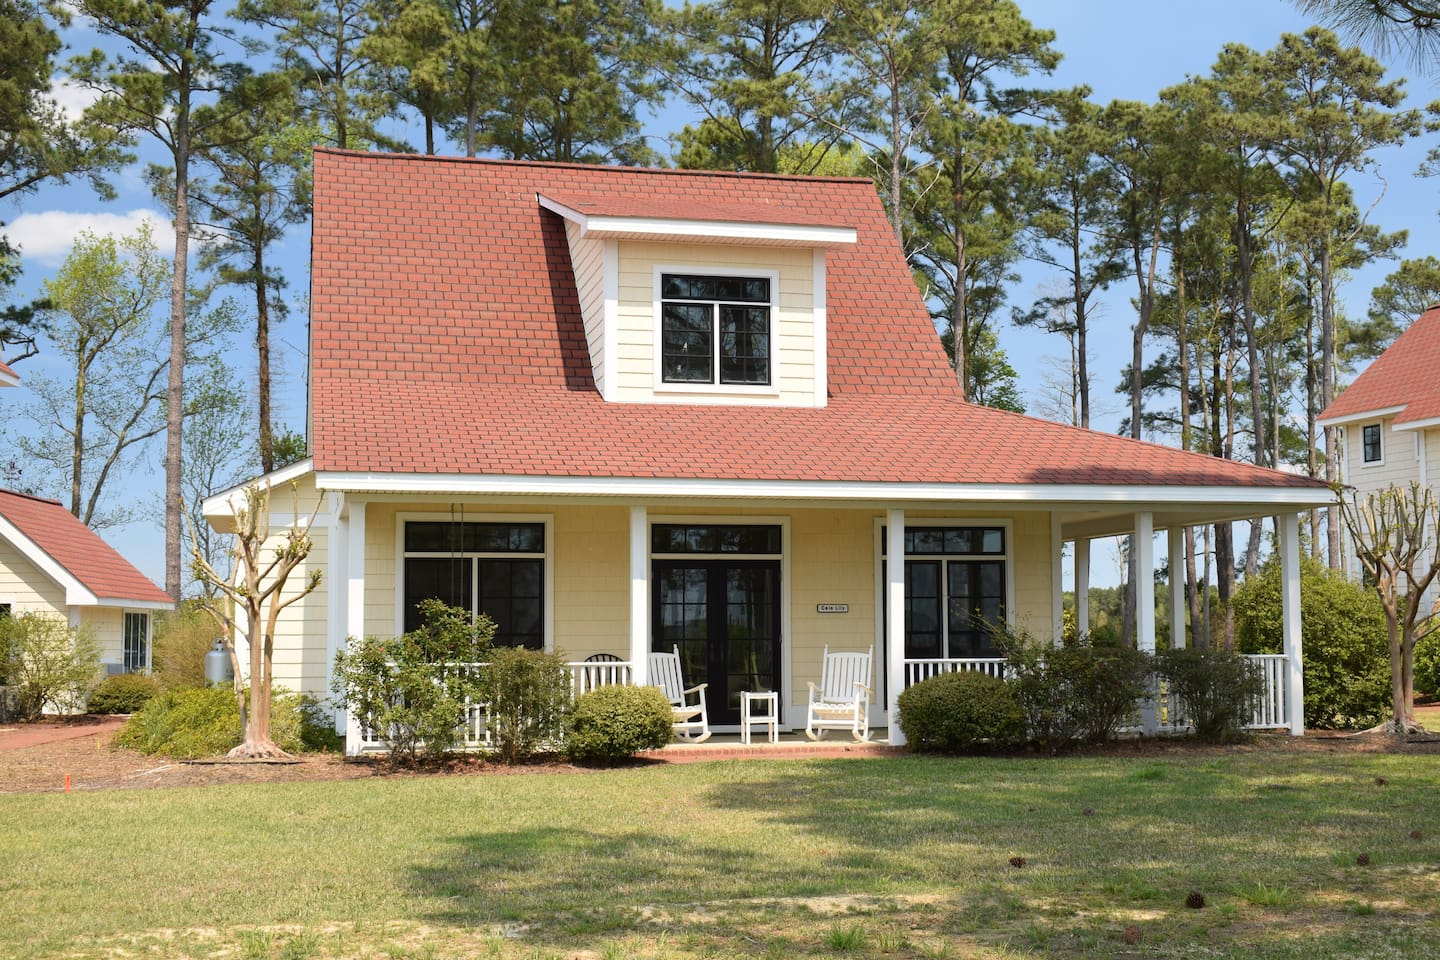 The Cala Lily Cottage: Home of Happy Memories!